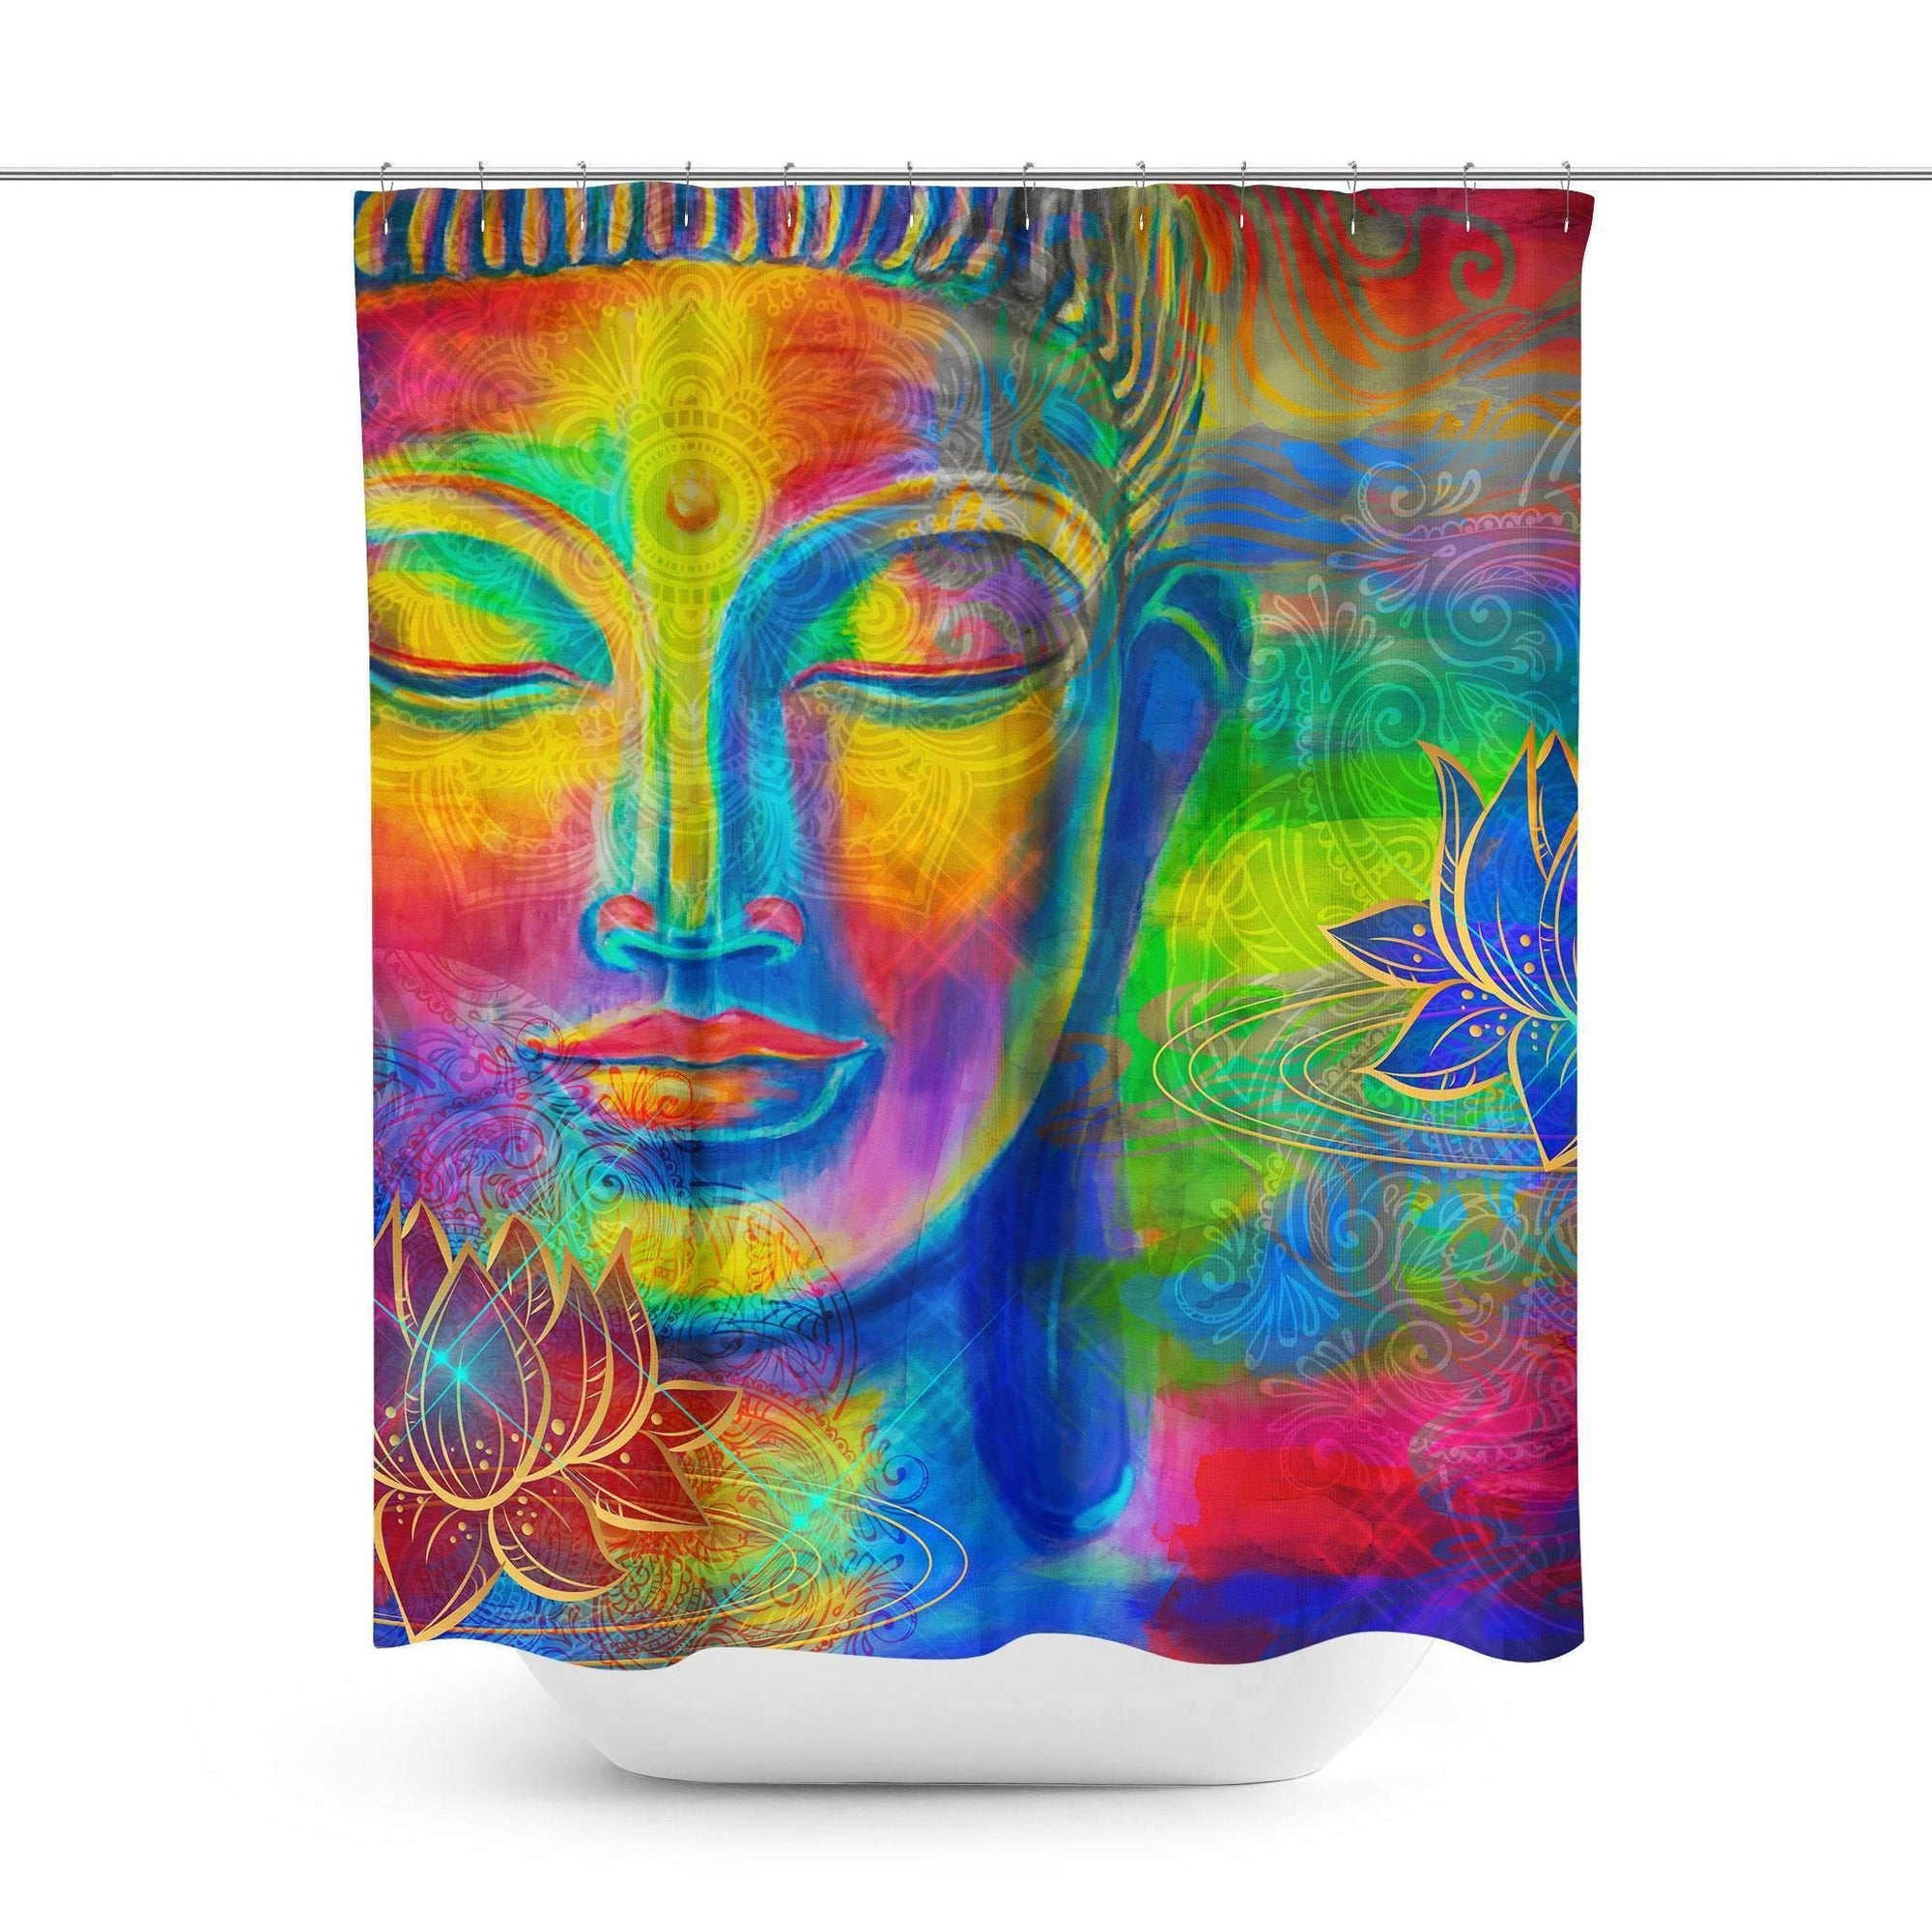 Buddha Shower Curtain - Shower Curtains - W.FRANCIS